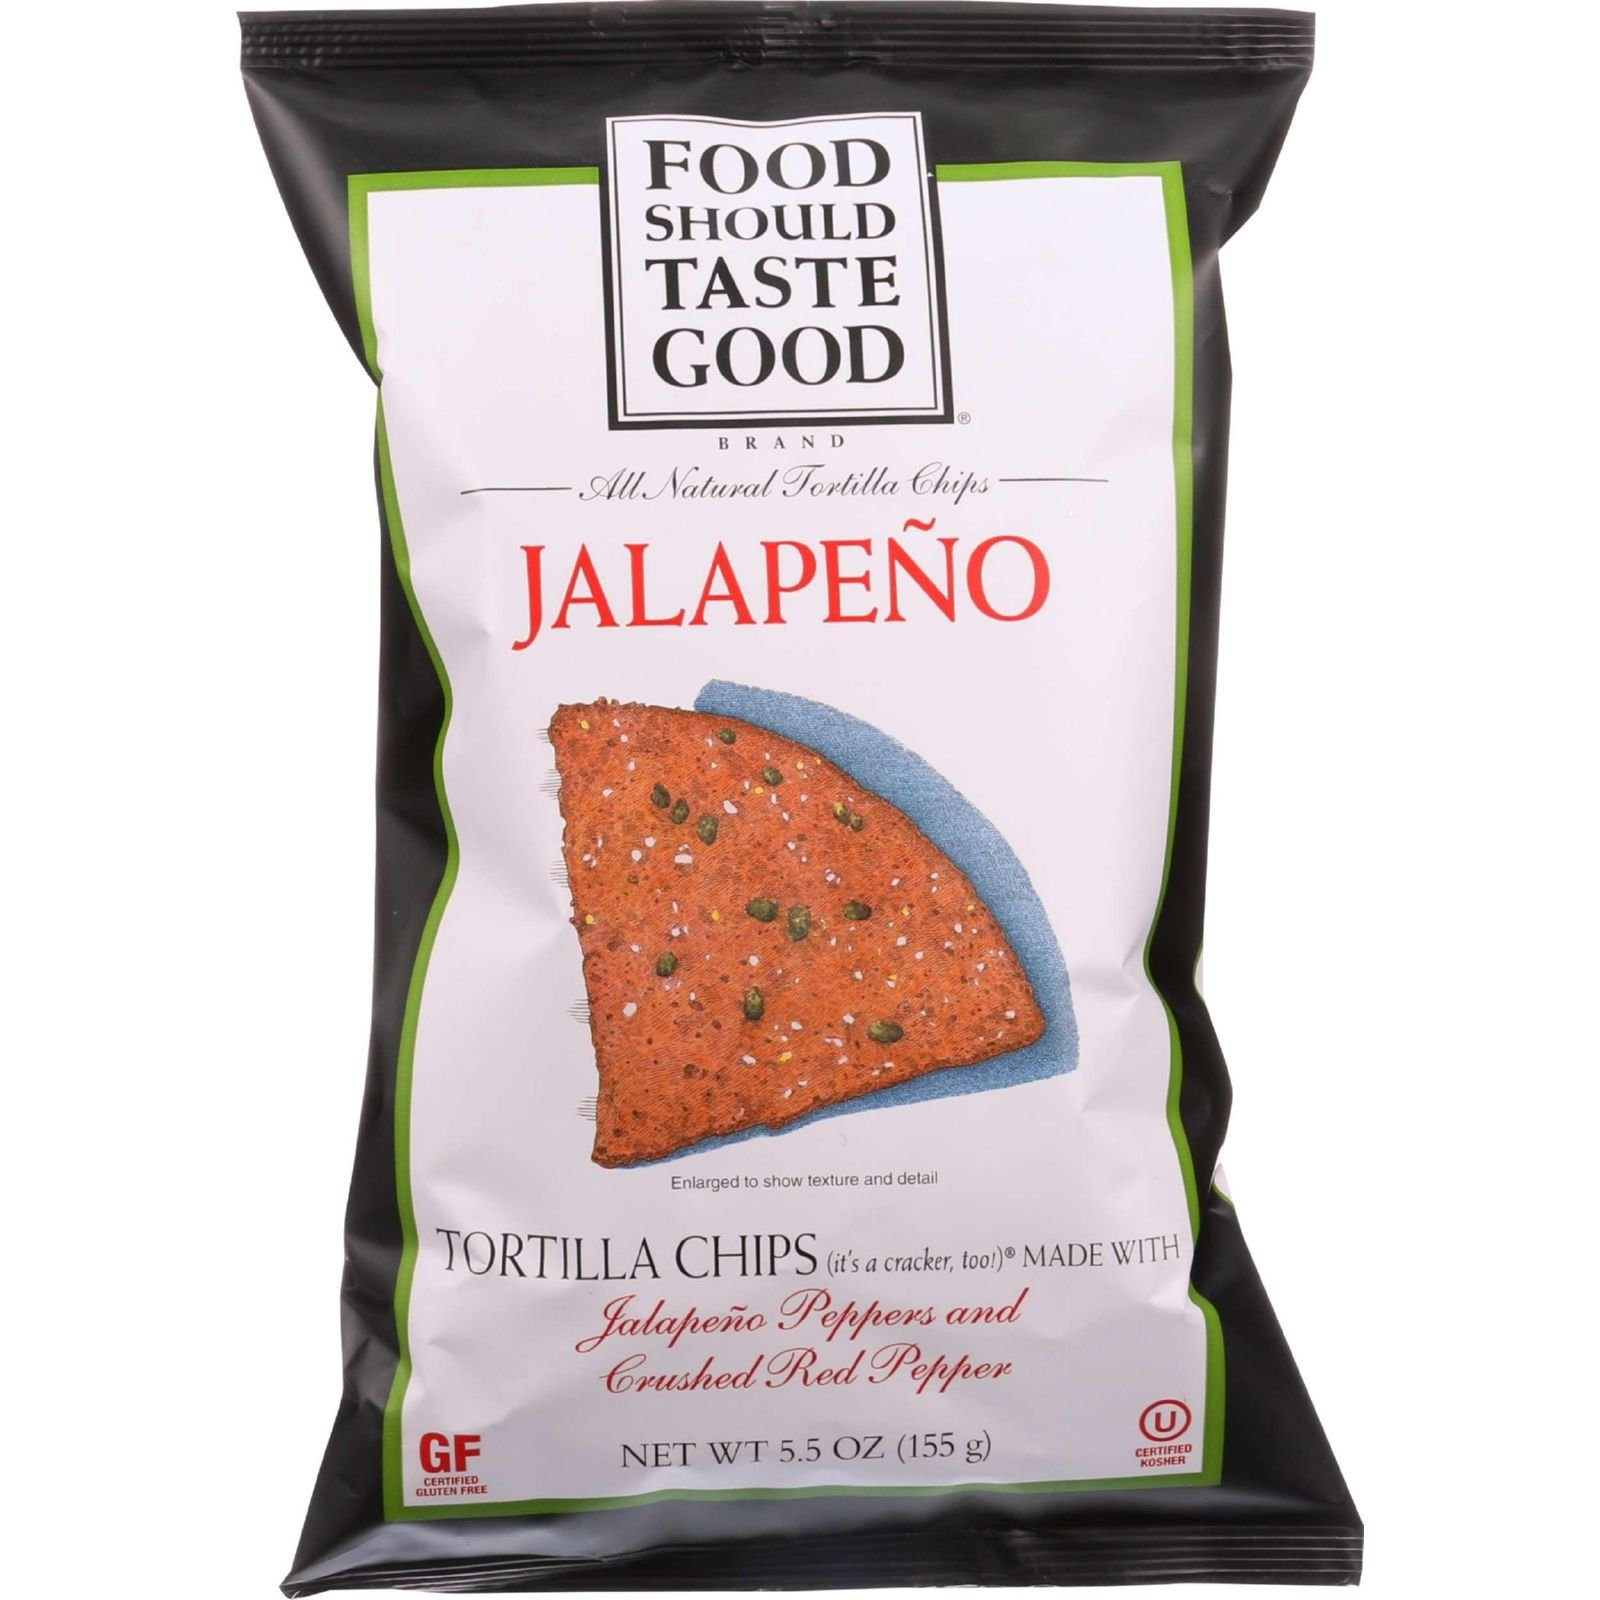 Food Should Taste Good Tortilla Chips - Jalapeno - 5.5 oz - case of 12 - - Gluten Free - - - -